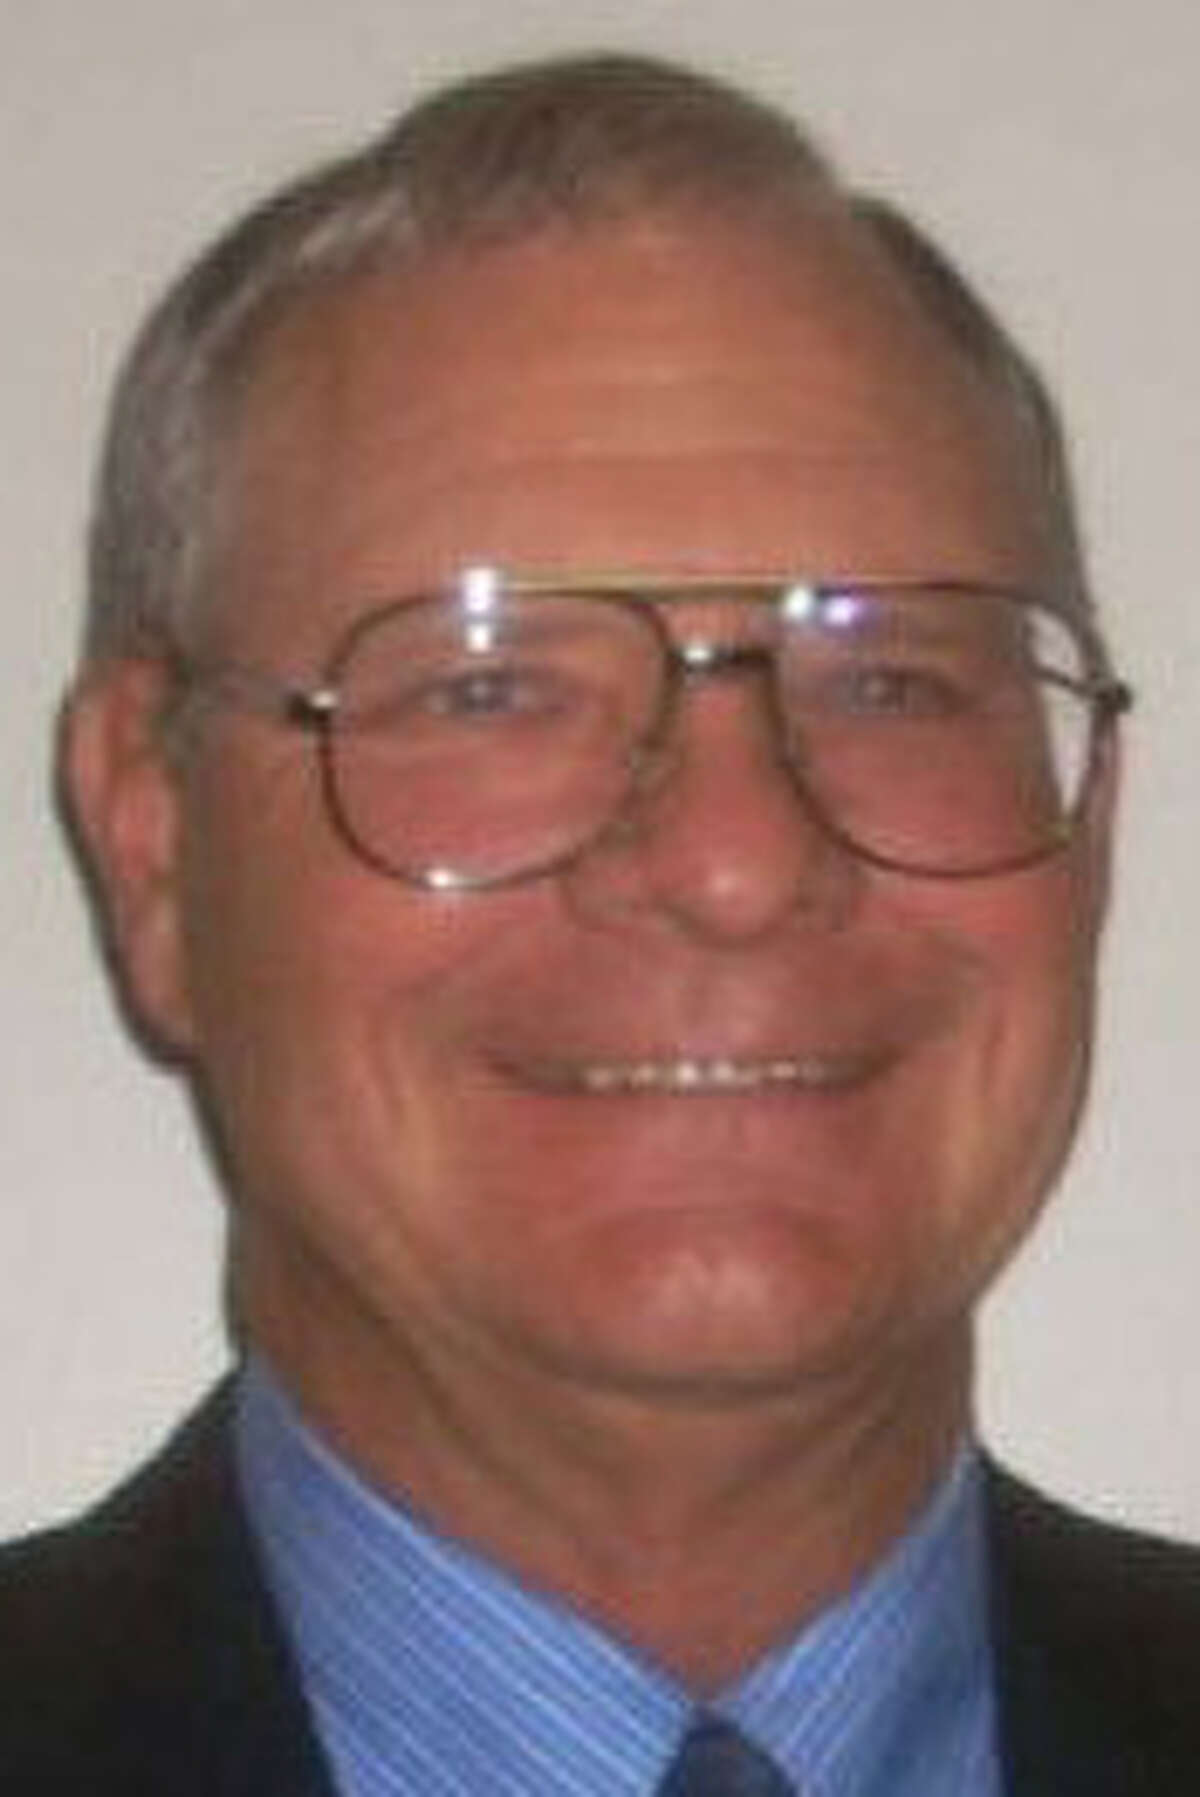 Former Hollywood Park Mayor Bill Bohlke was found dead on his ranch in 2012.